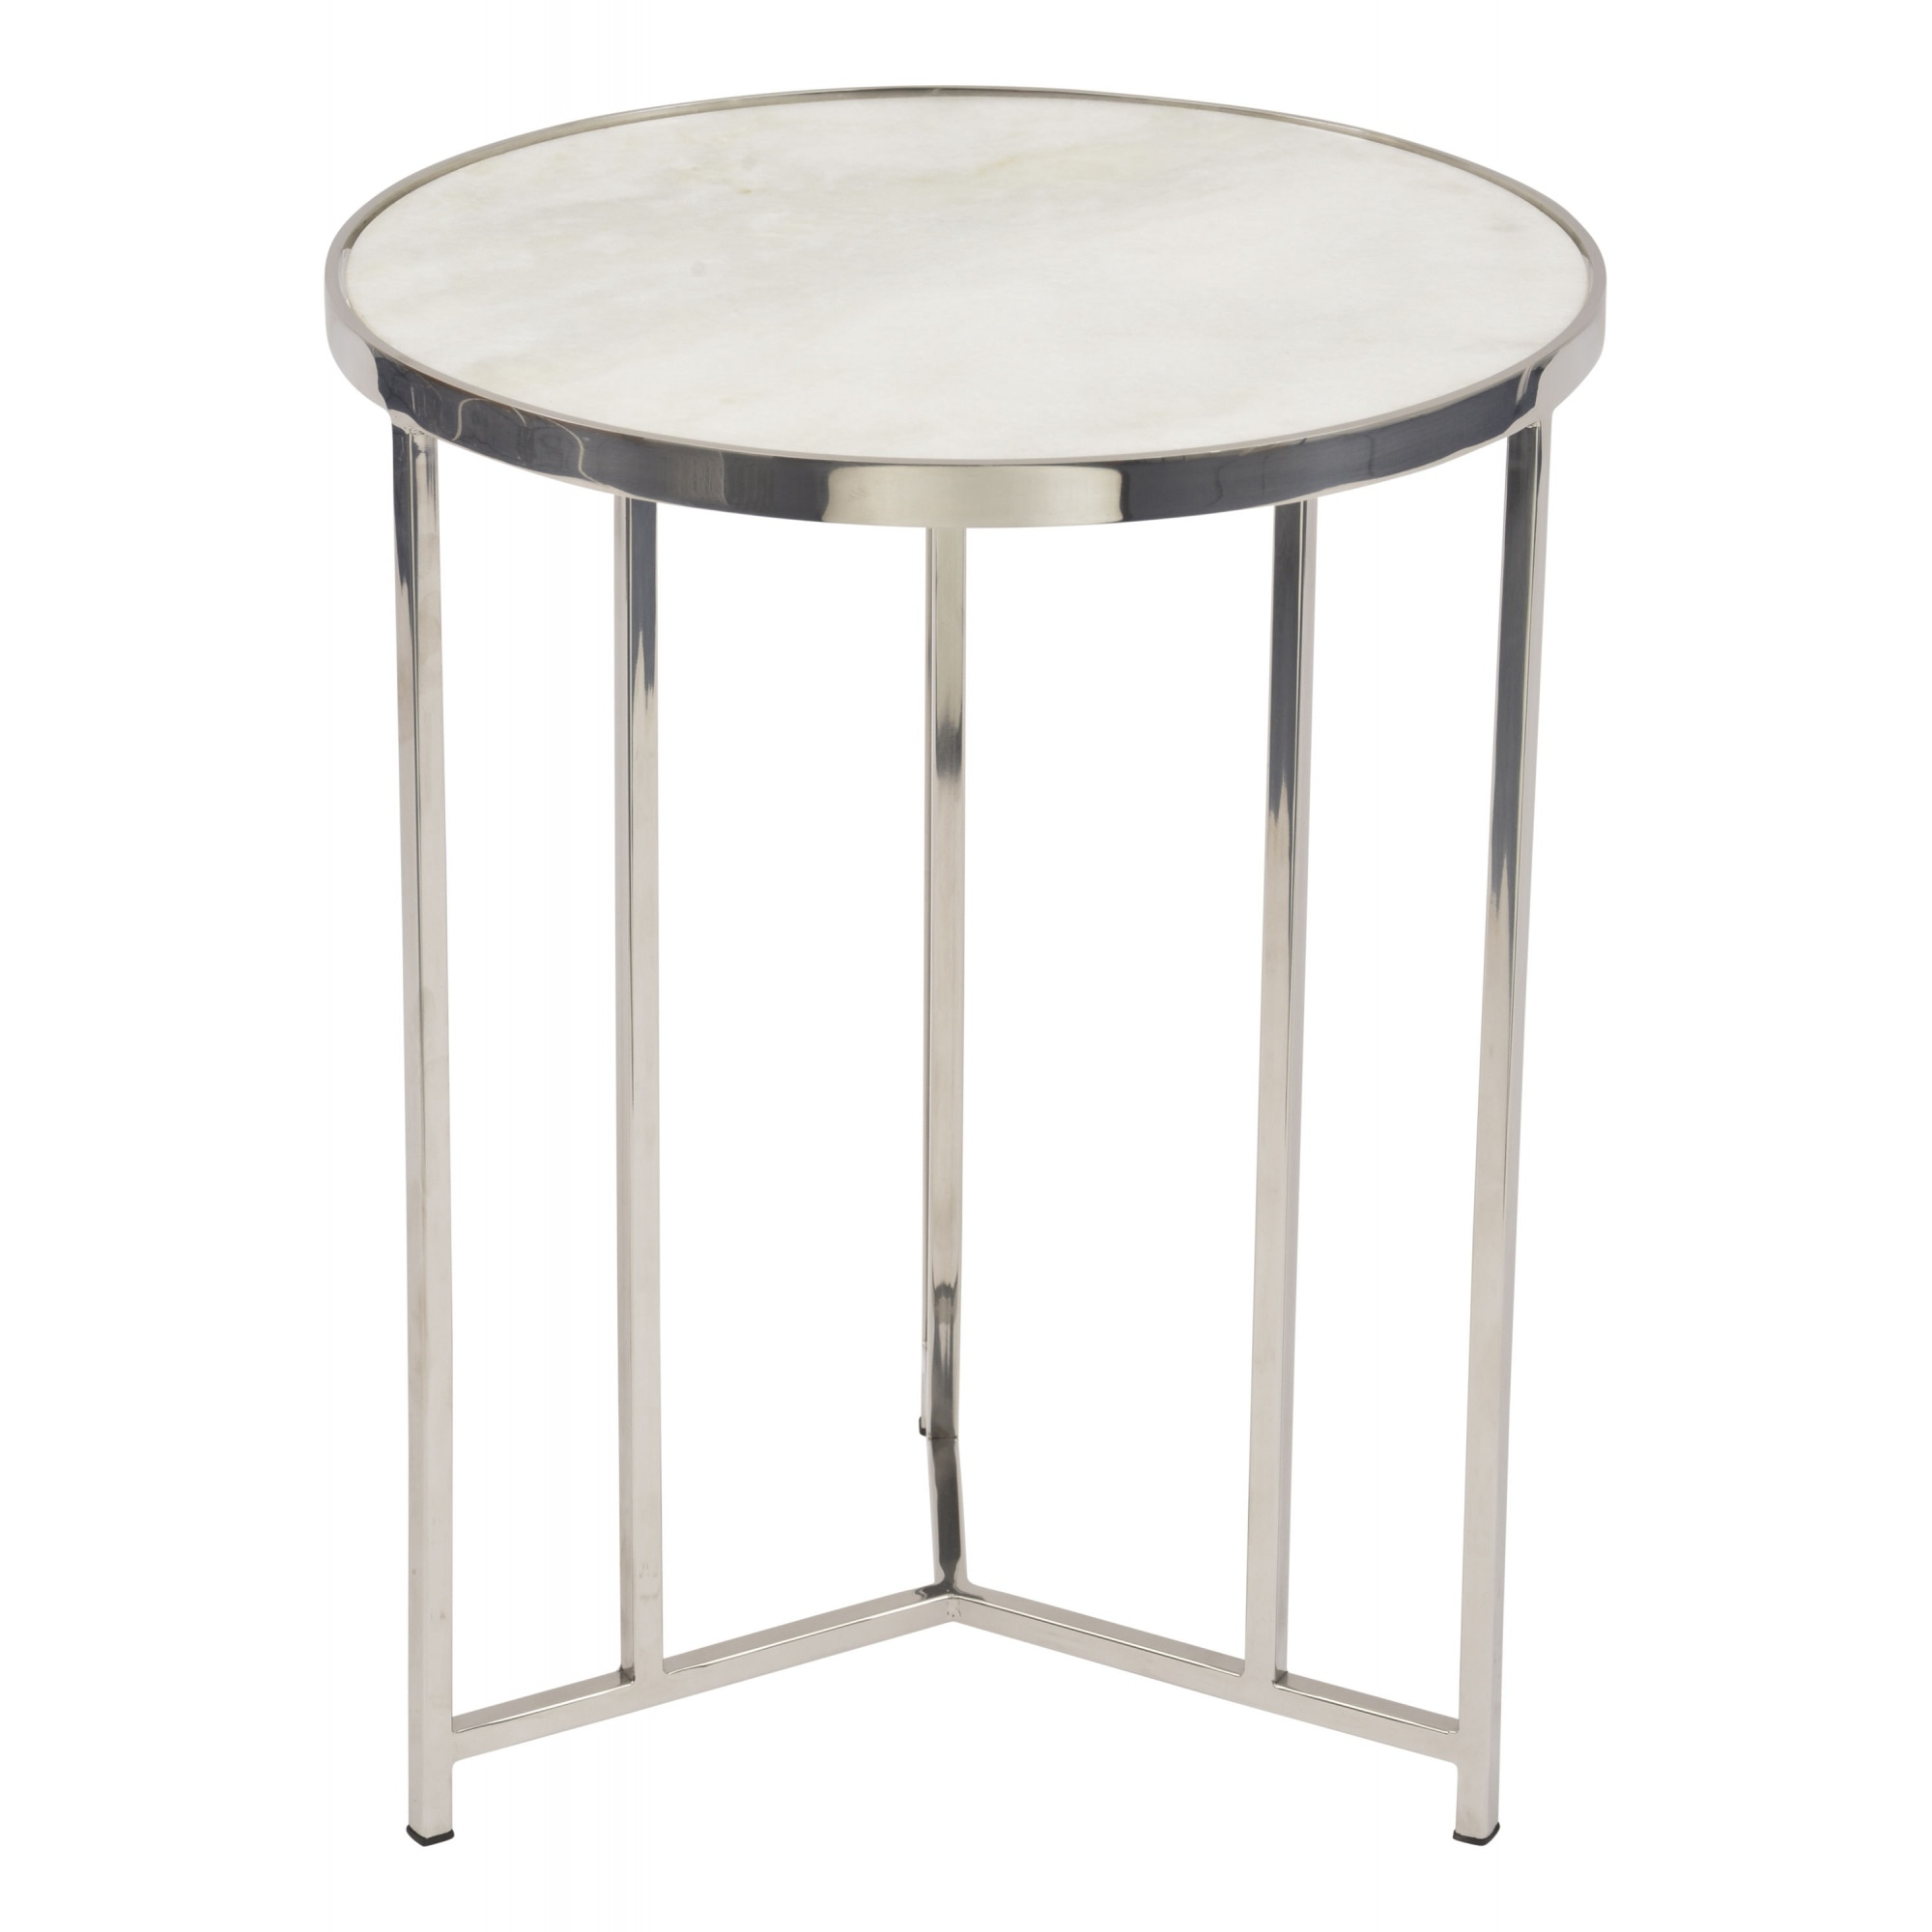 White Marble And Polished Nickel Circular Side Table At Fusion Living